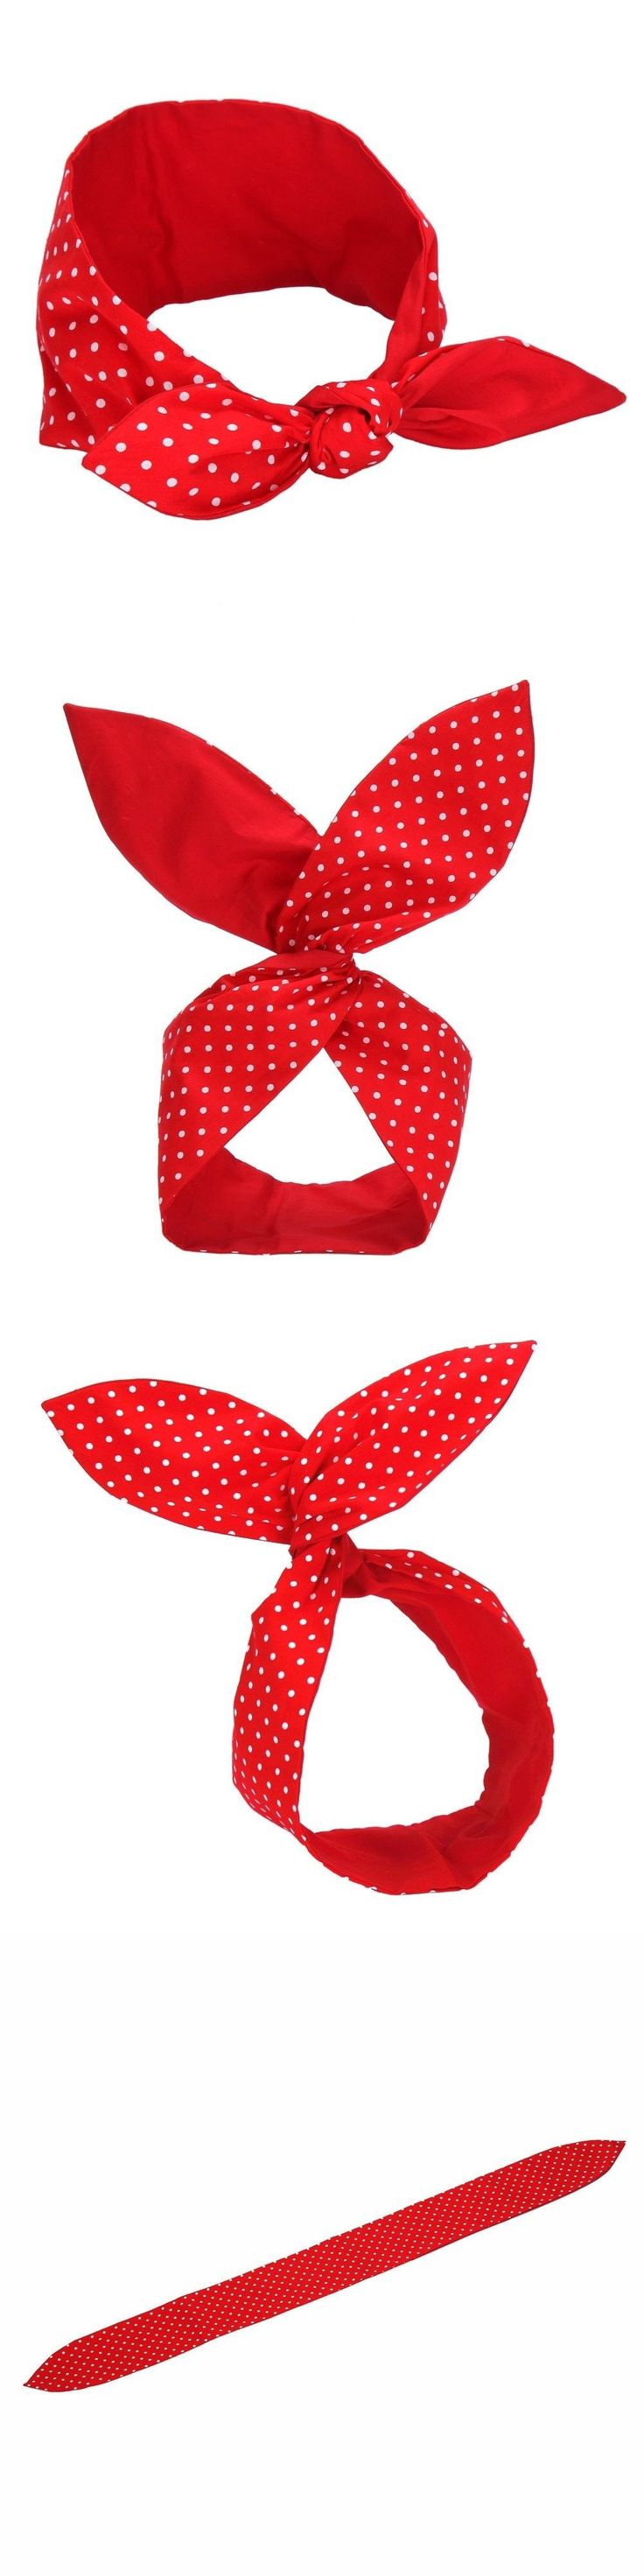 Scarves and Bandanas 169281: Classy Rosie The Riveter Polka Dot Red Hair Band Halloween Women S Costume -> BUY IT NOW ONLY: $53.13 on eBay!